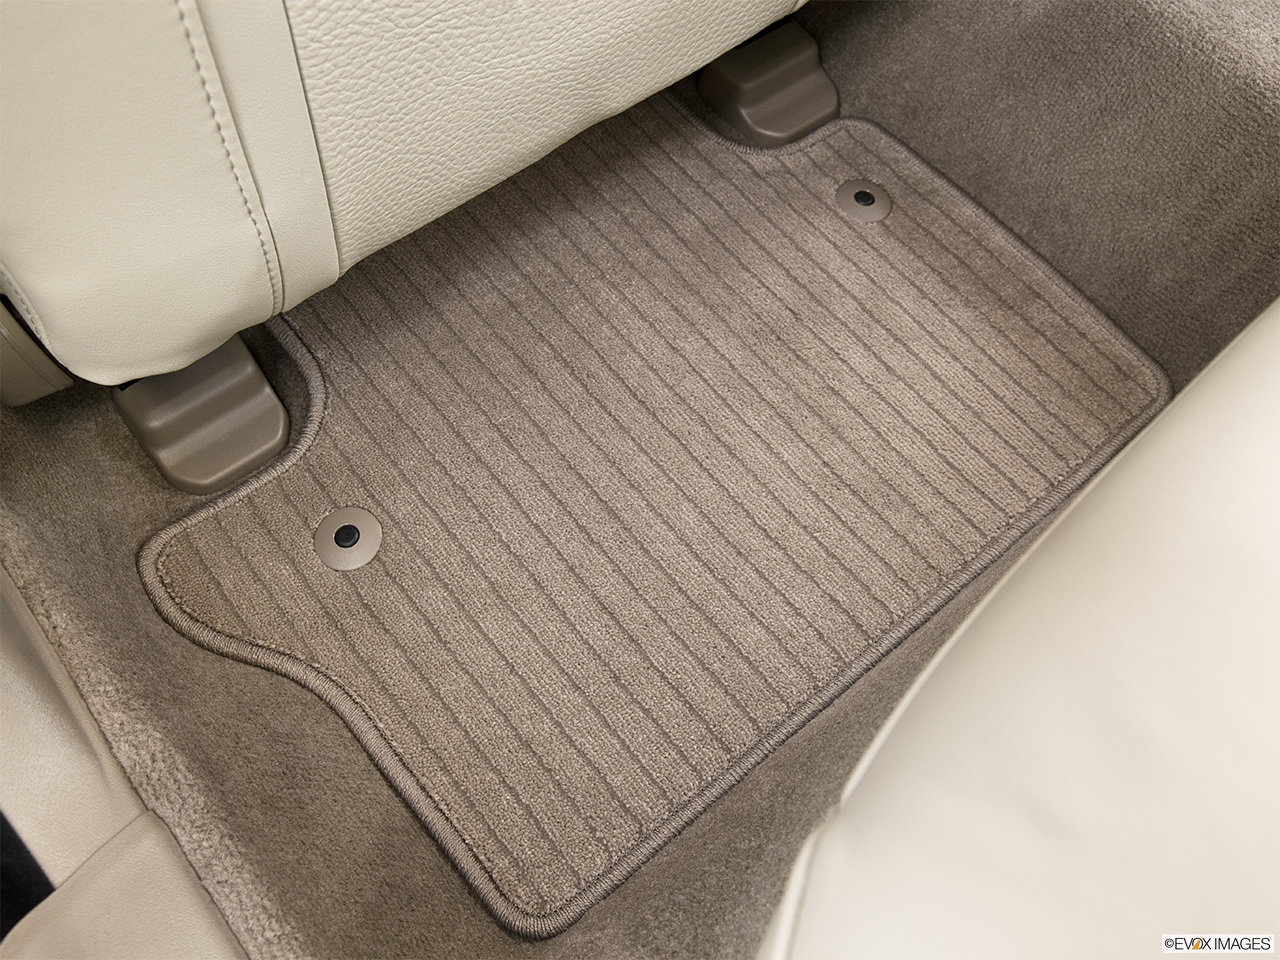 2014 Volvo S80 T6 AWD Platinum Rear driver's side floor mat. Mid-seat level from outside looking in.